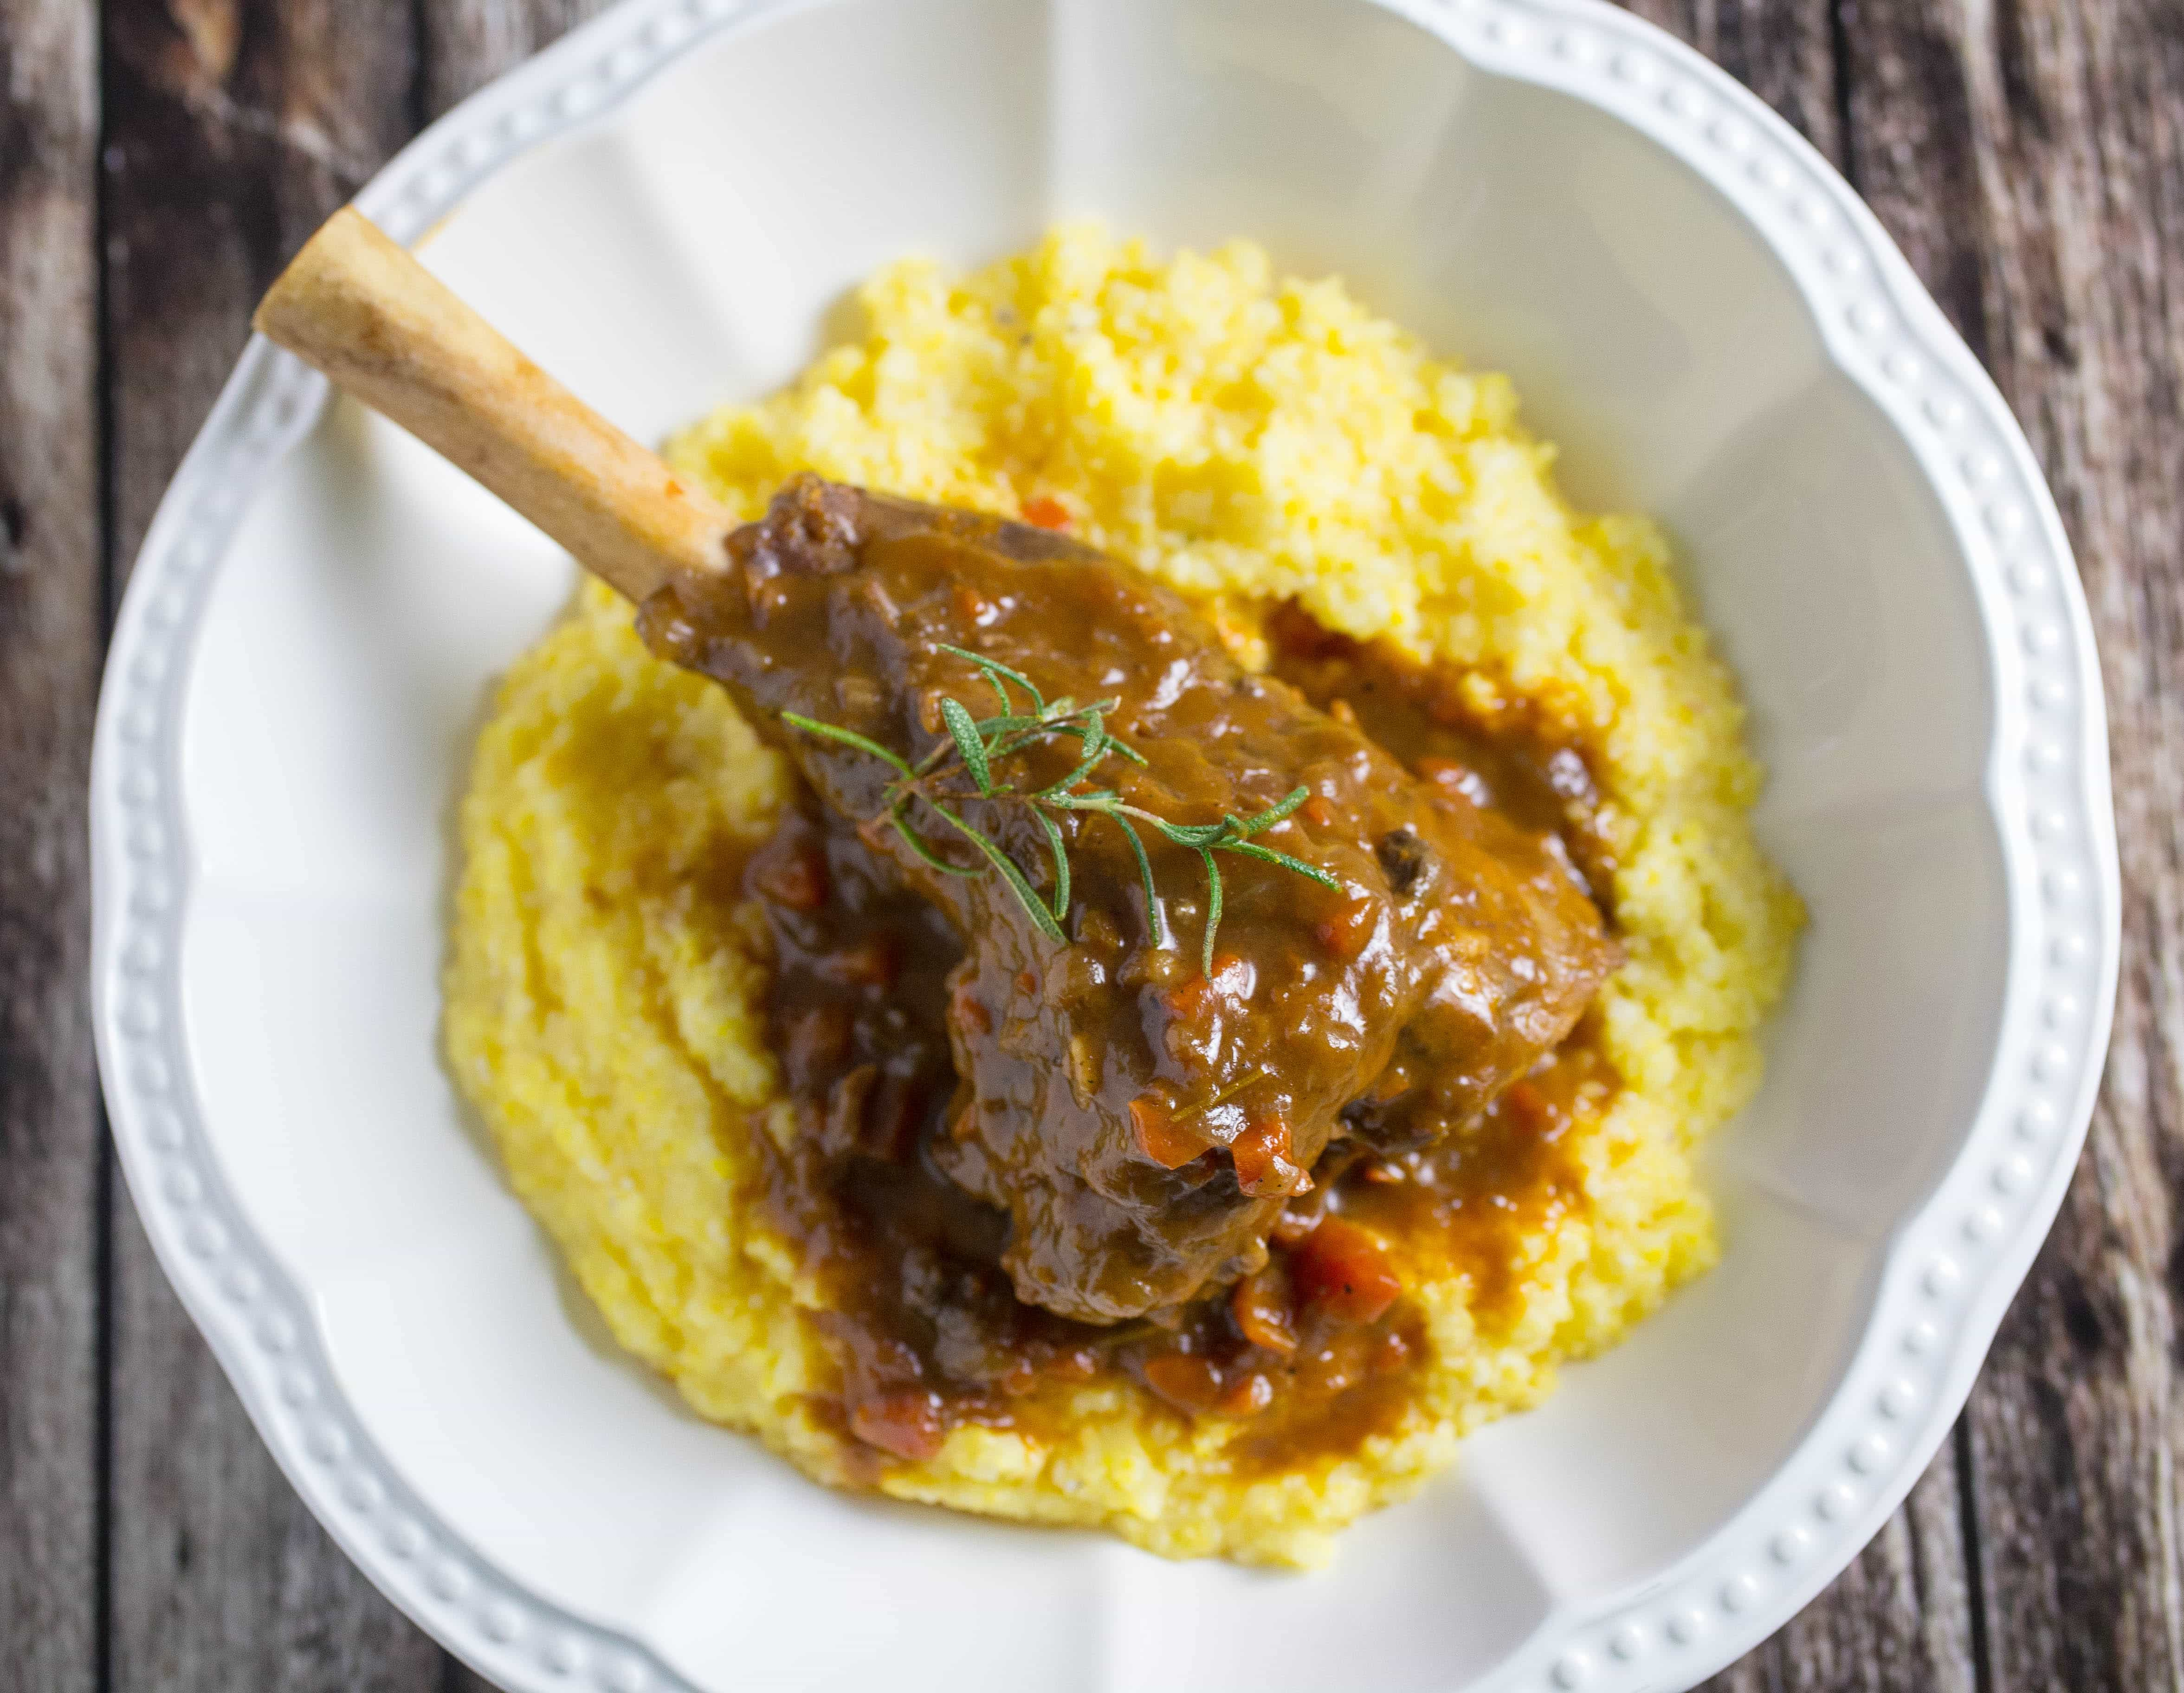 Overhead shot of a Lamb Shank in a white bowl on a wooden table